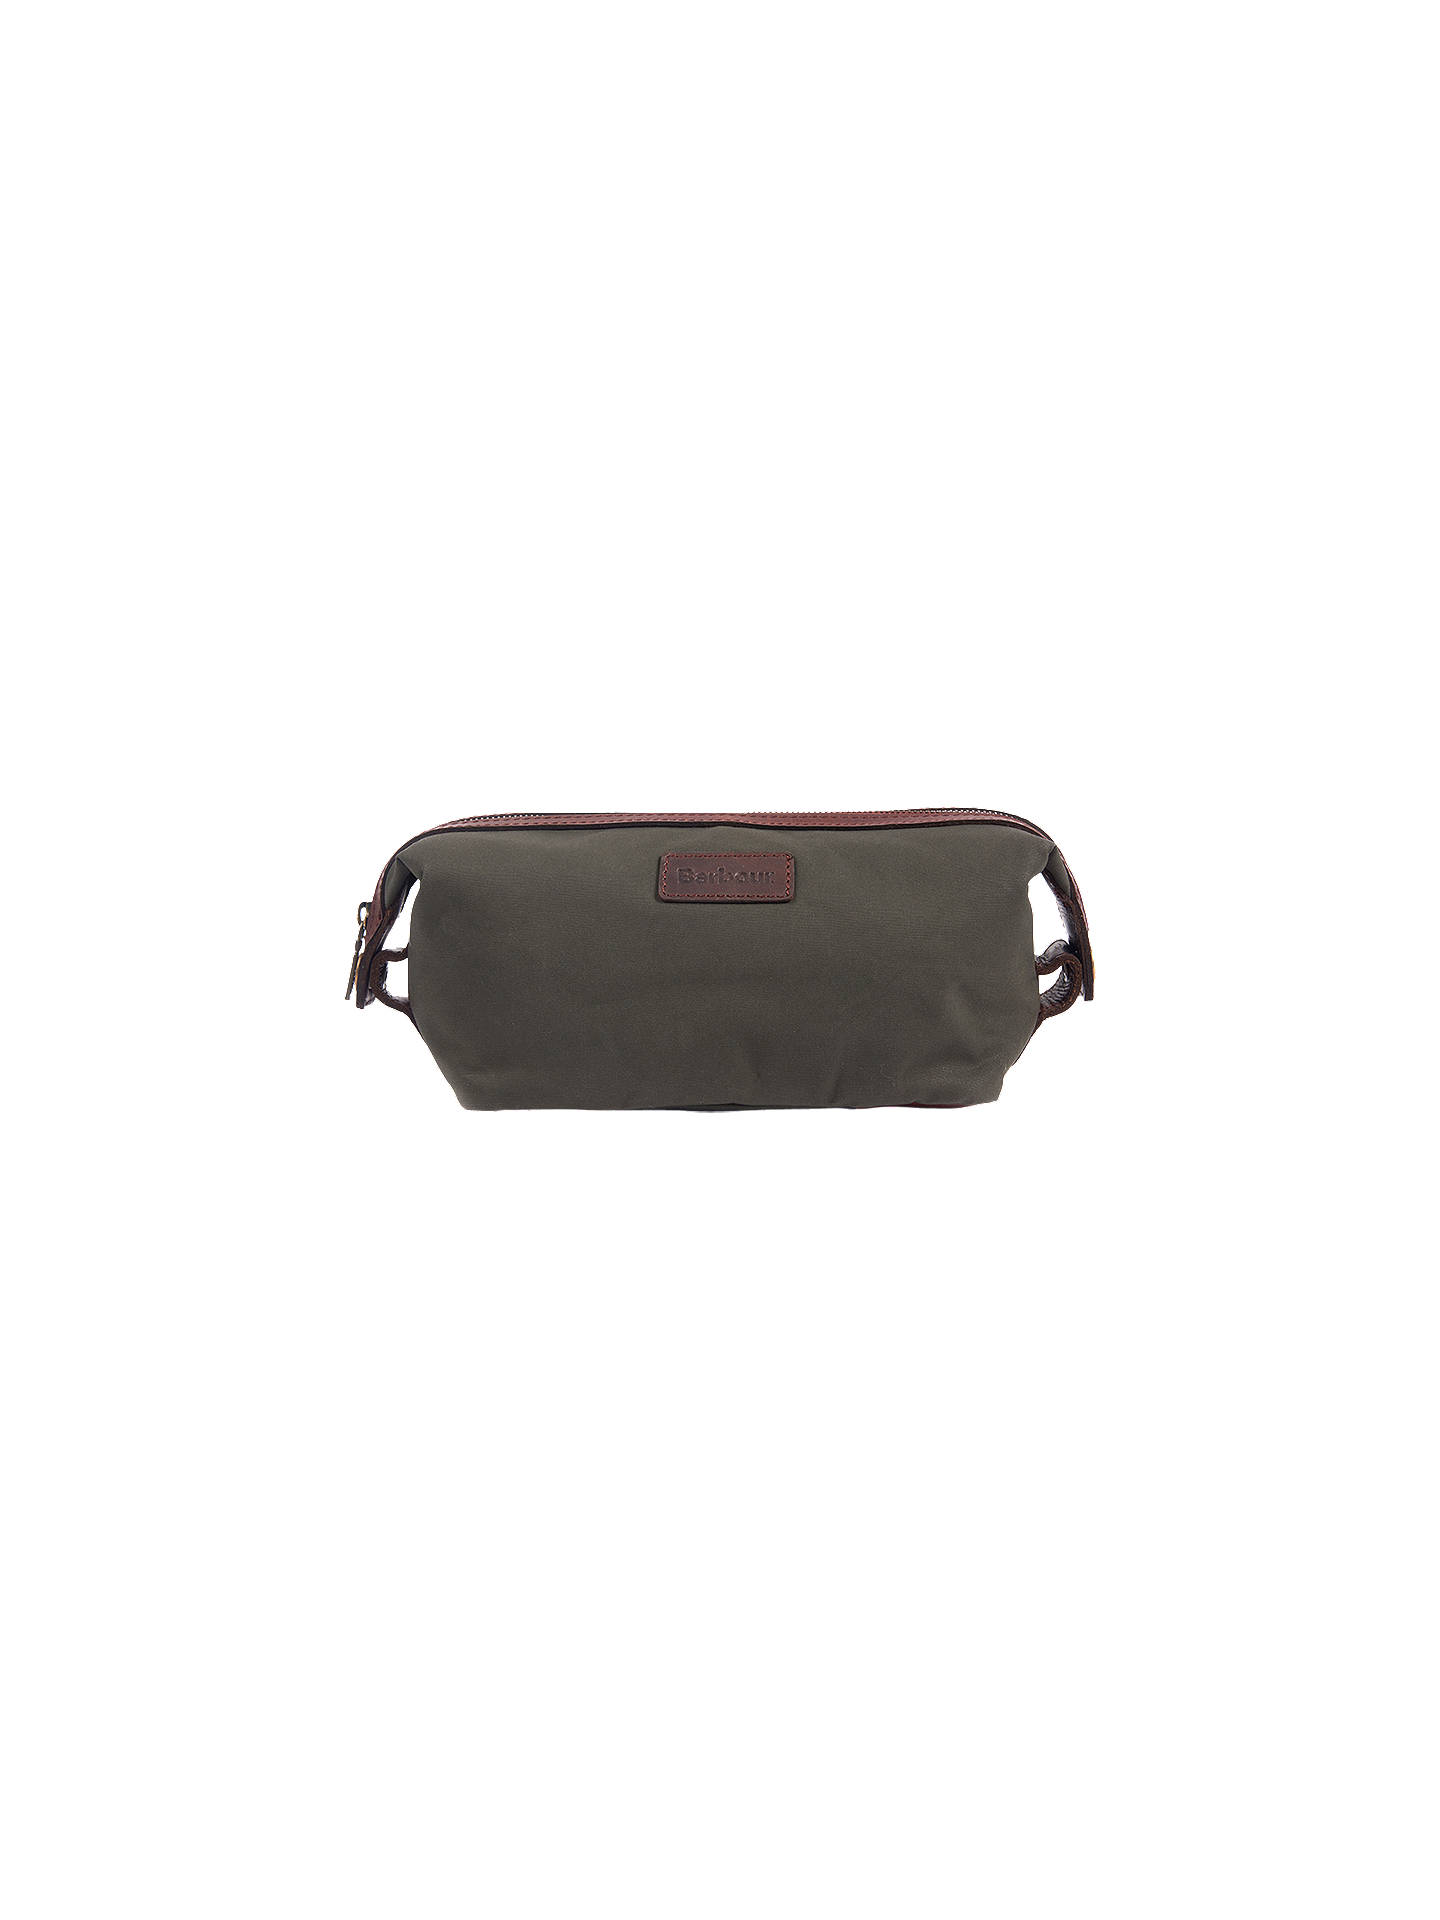 5f520a0276 Buy Barbour Drywax Wash Bag